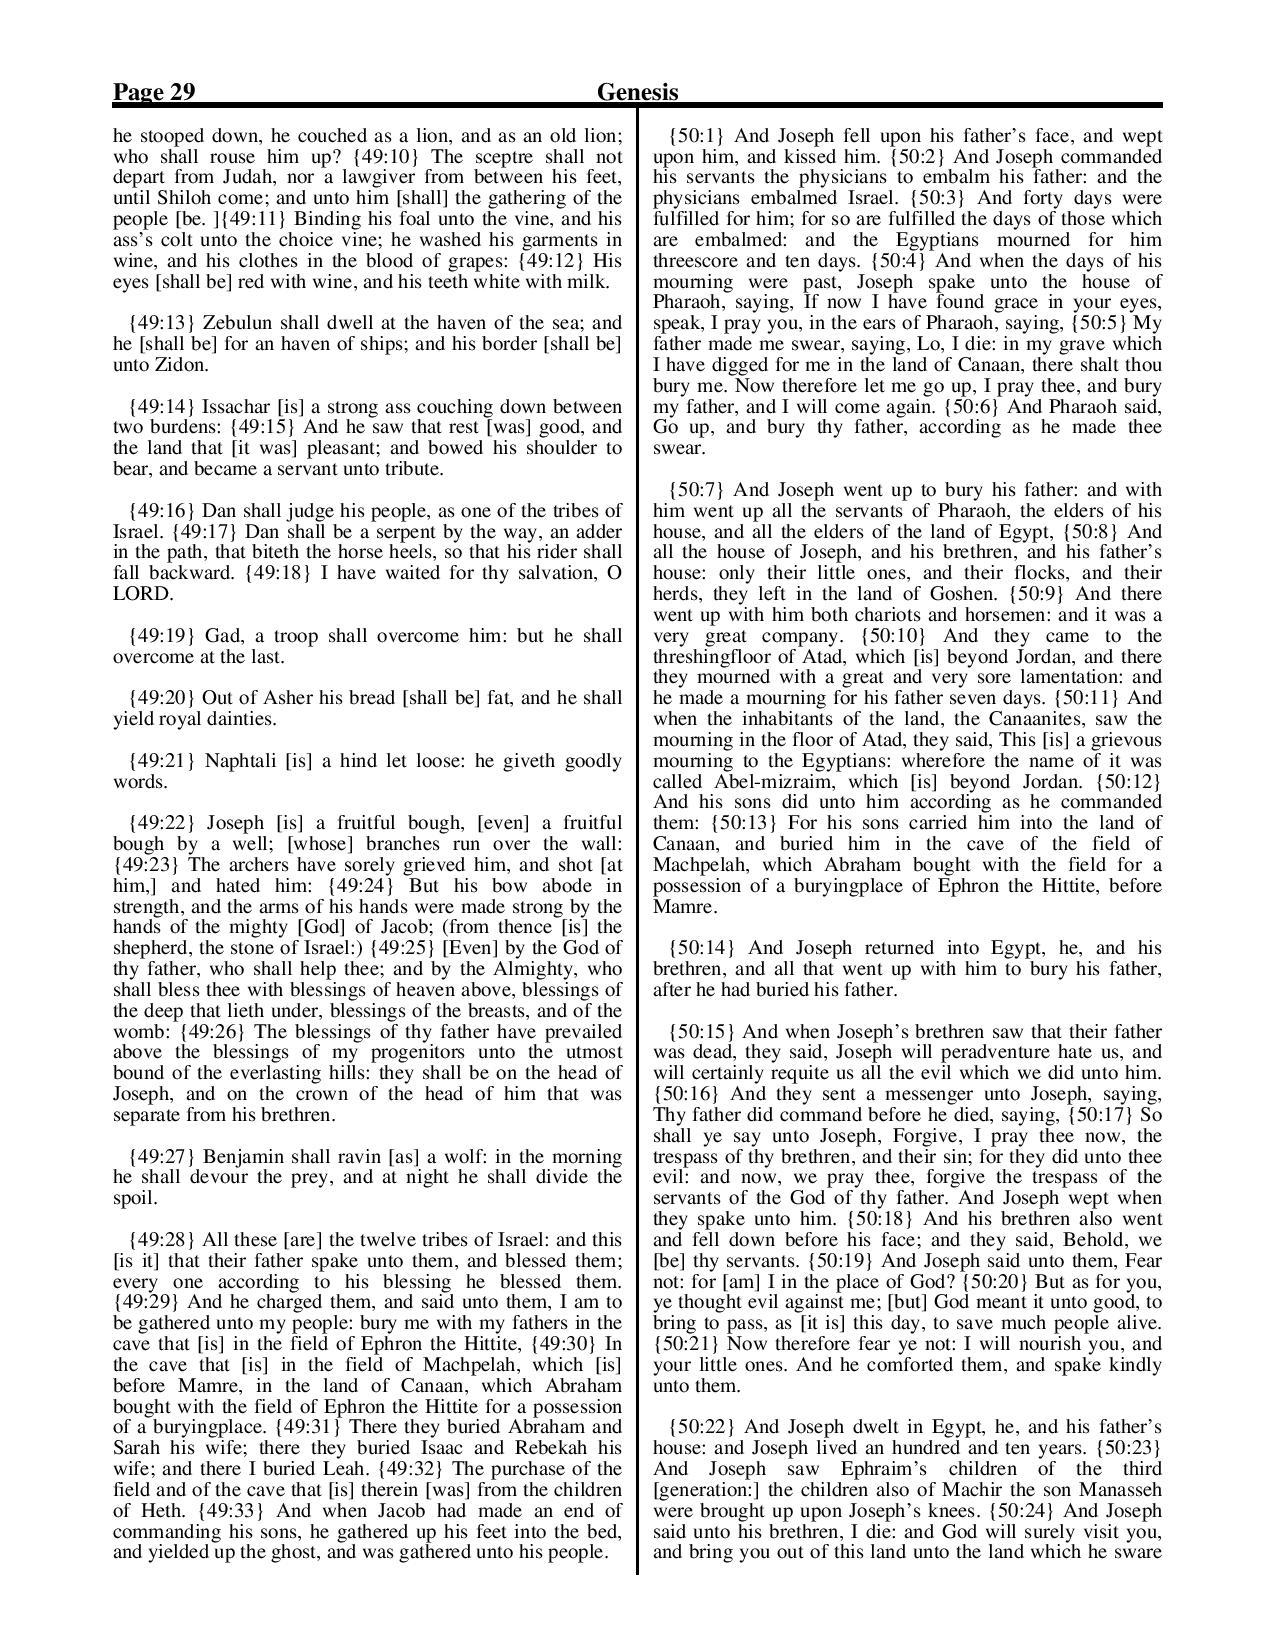 King-James-Bible-KJV-Bible-PDF-page-050